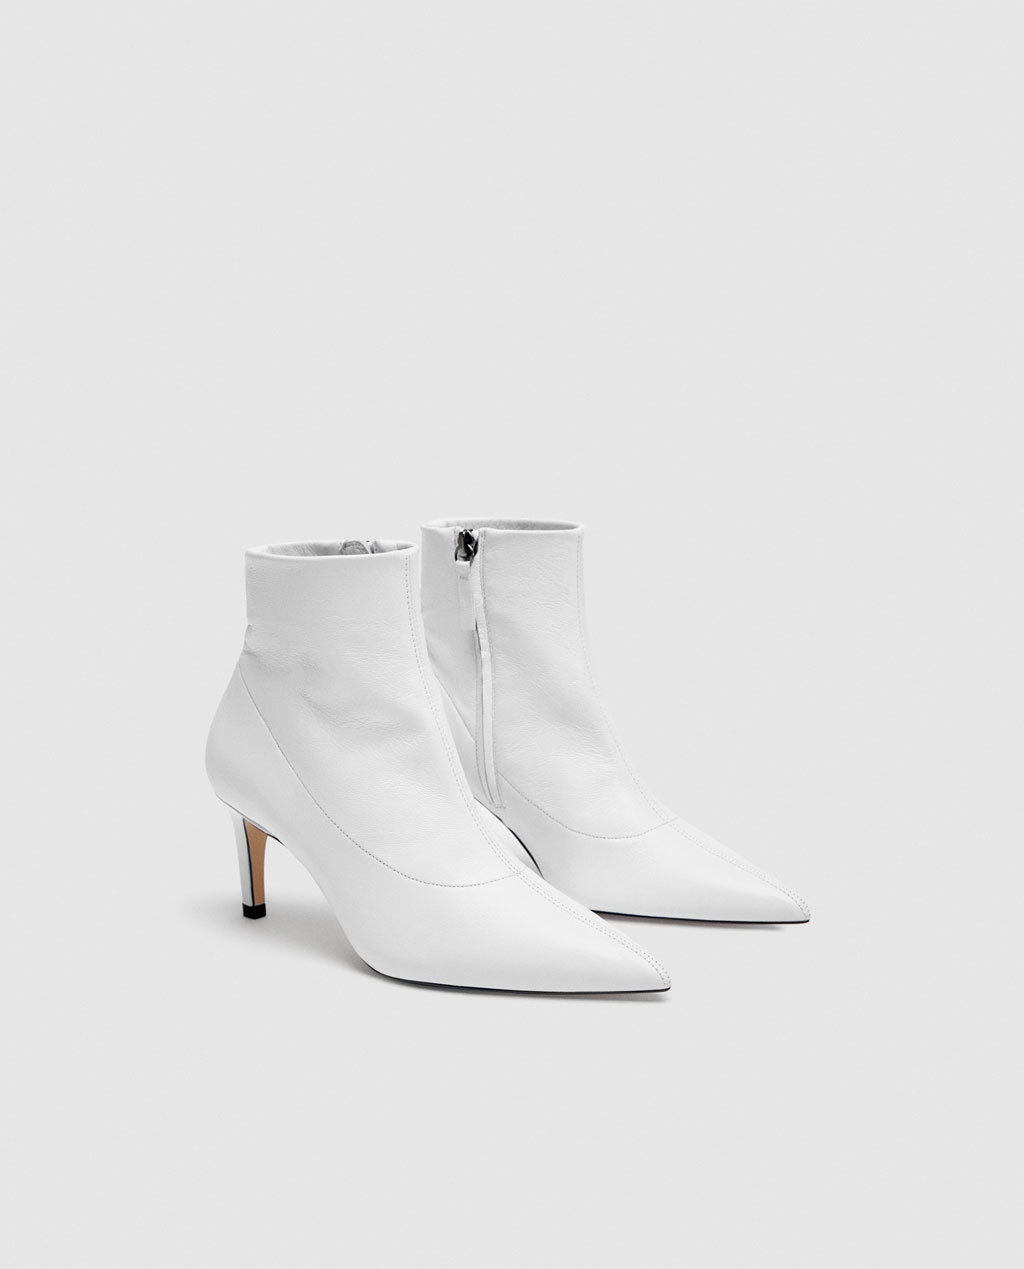 Zara-whiteboots